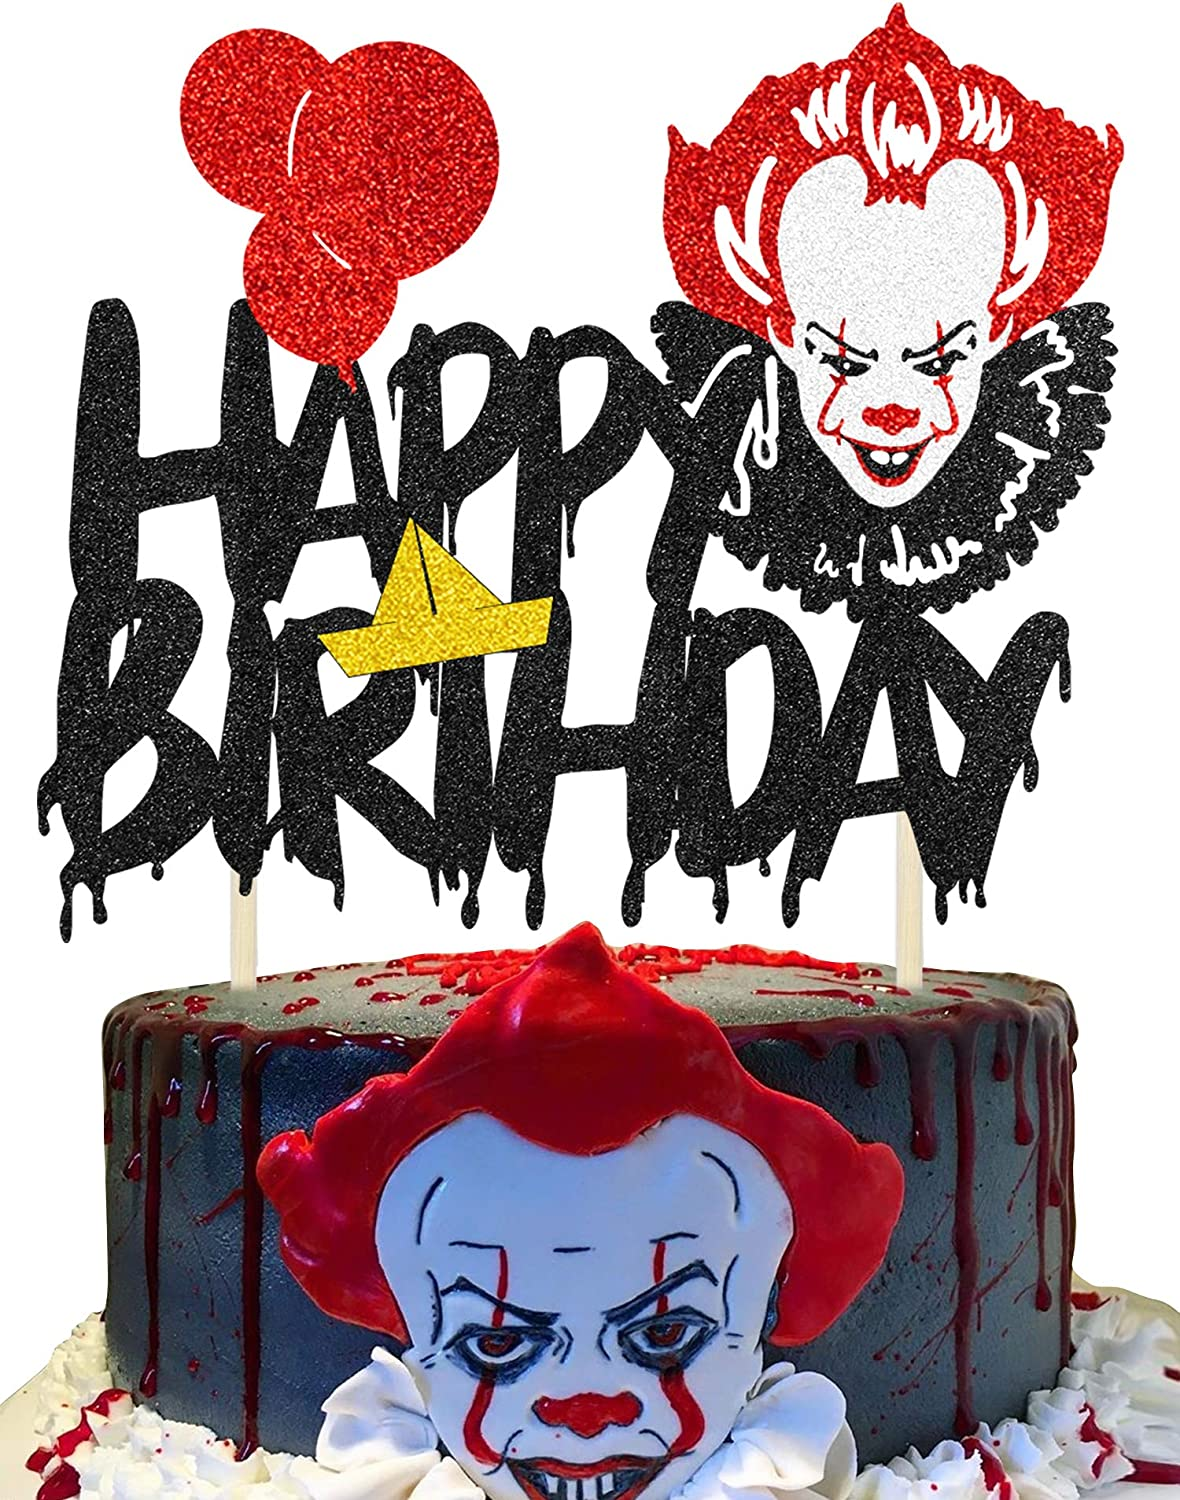 KAPOKKU Black Happy Birthday Cake It for All items free shipping Pennywise Movie Topper Virginia Beach Mall